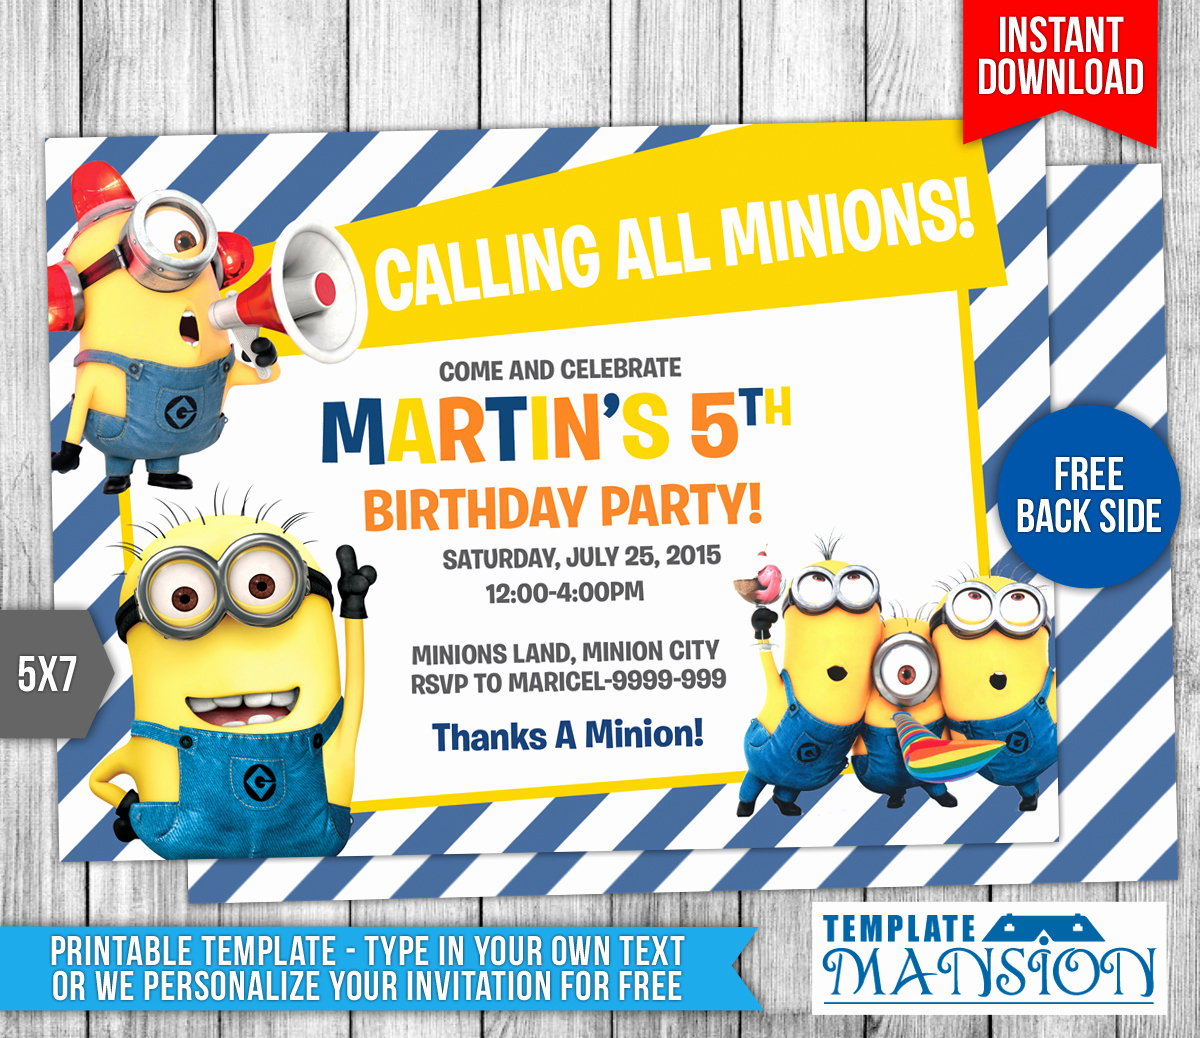 Minion Birthday Invitation Wording Beautiful Minions Birthday Invitation 7 by Templatemansion On